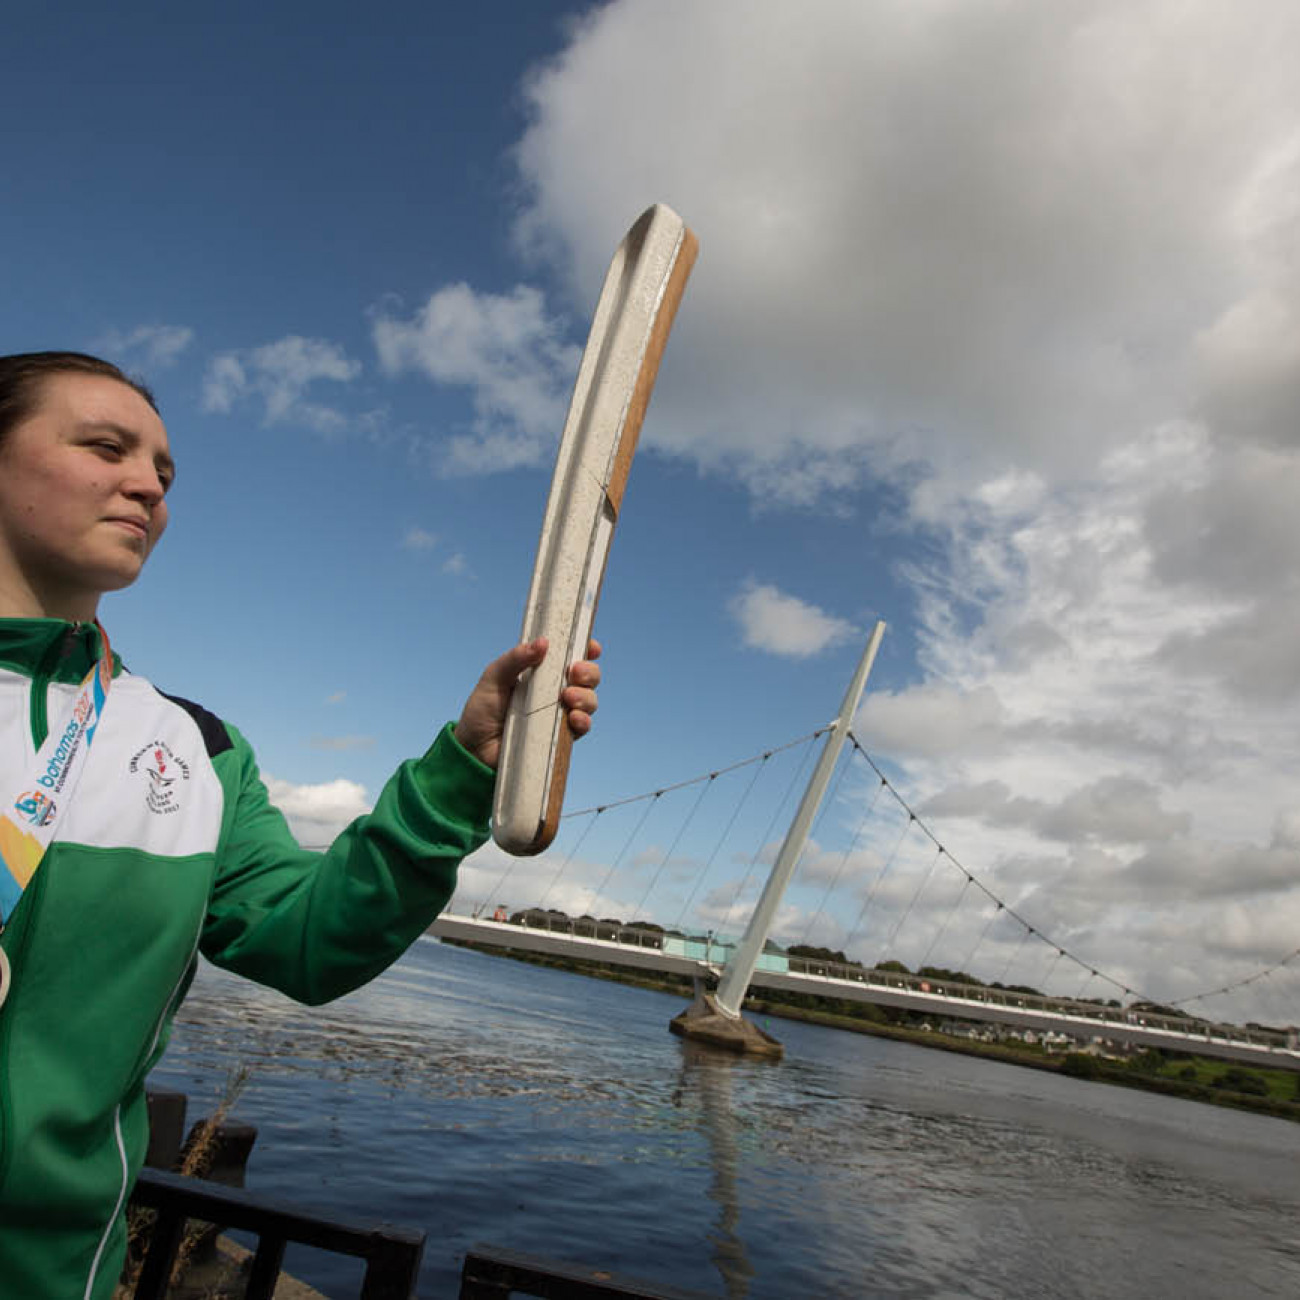 The Queen's Baton, carried by Kirsty Strouts McCallion (silver medal CYG Bahamas 2017, judo) on Peace Bridge, in Derry/Londonderry, in Northern Ireland, on 29 August 2017.